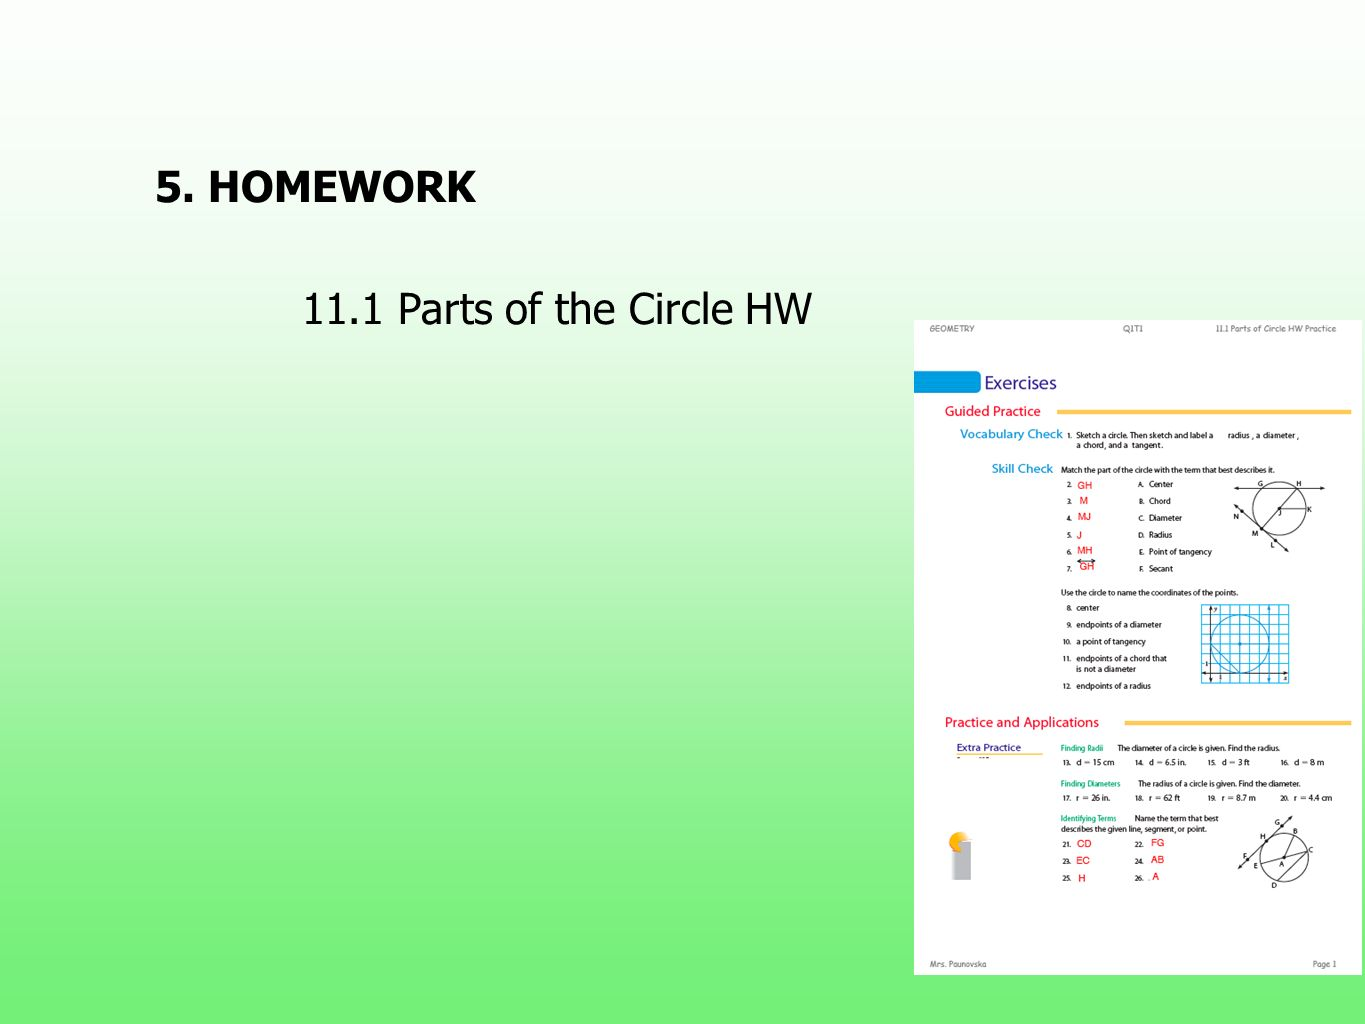 5. HOMEWORK 11.1 Parts of the Circle HW